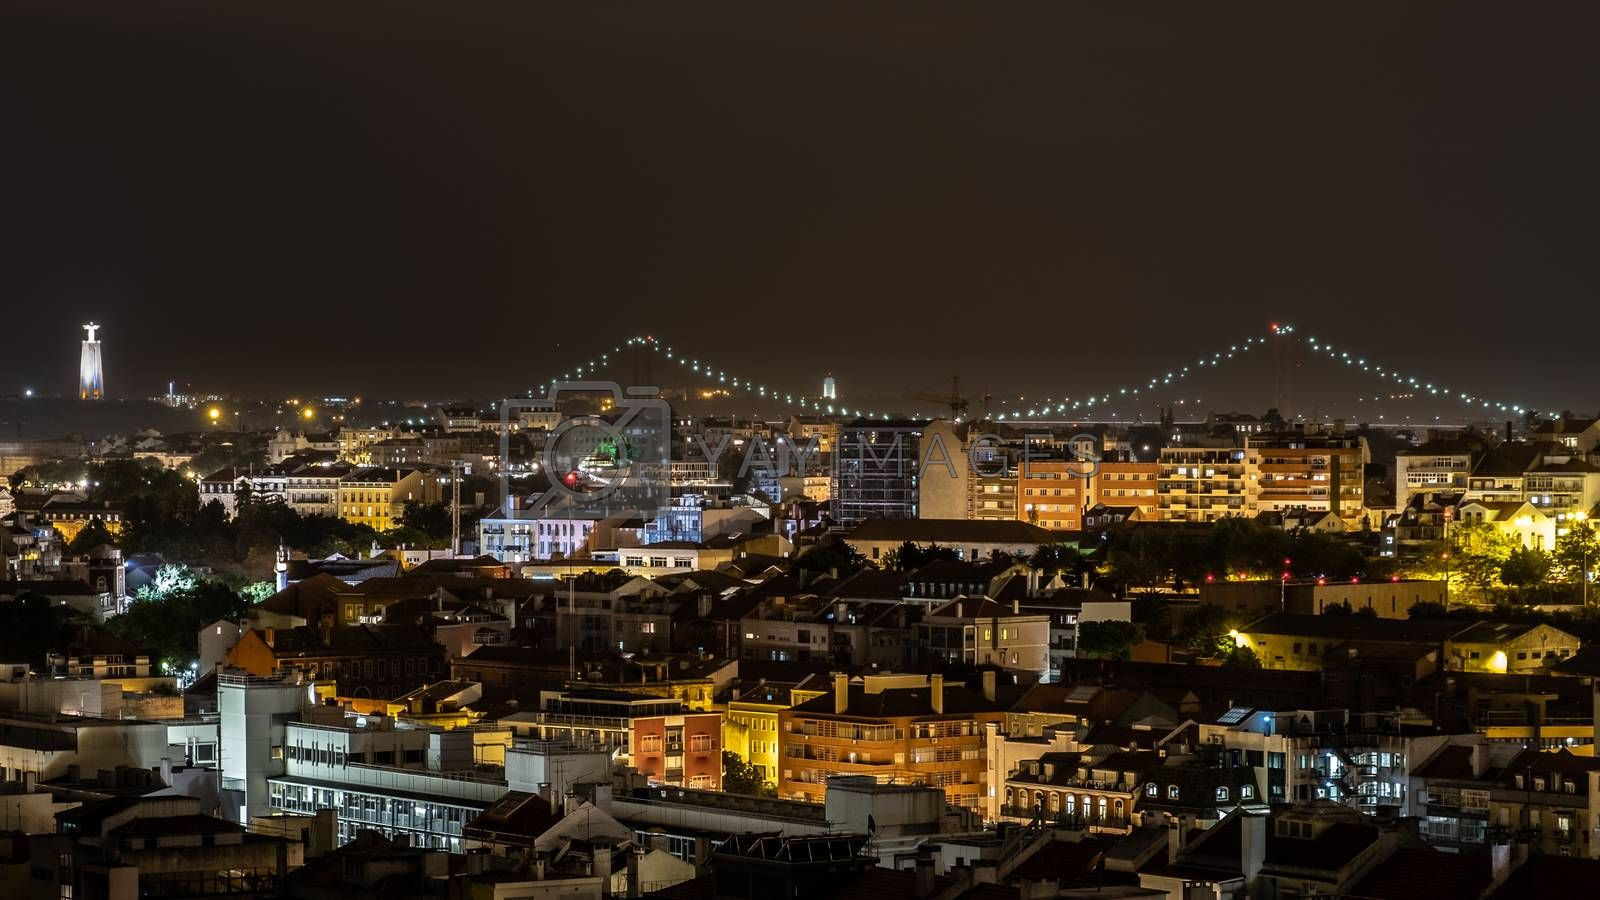 Royalty free image of Rooftop View of Lisbon City at Night by kstphotography